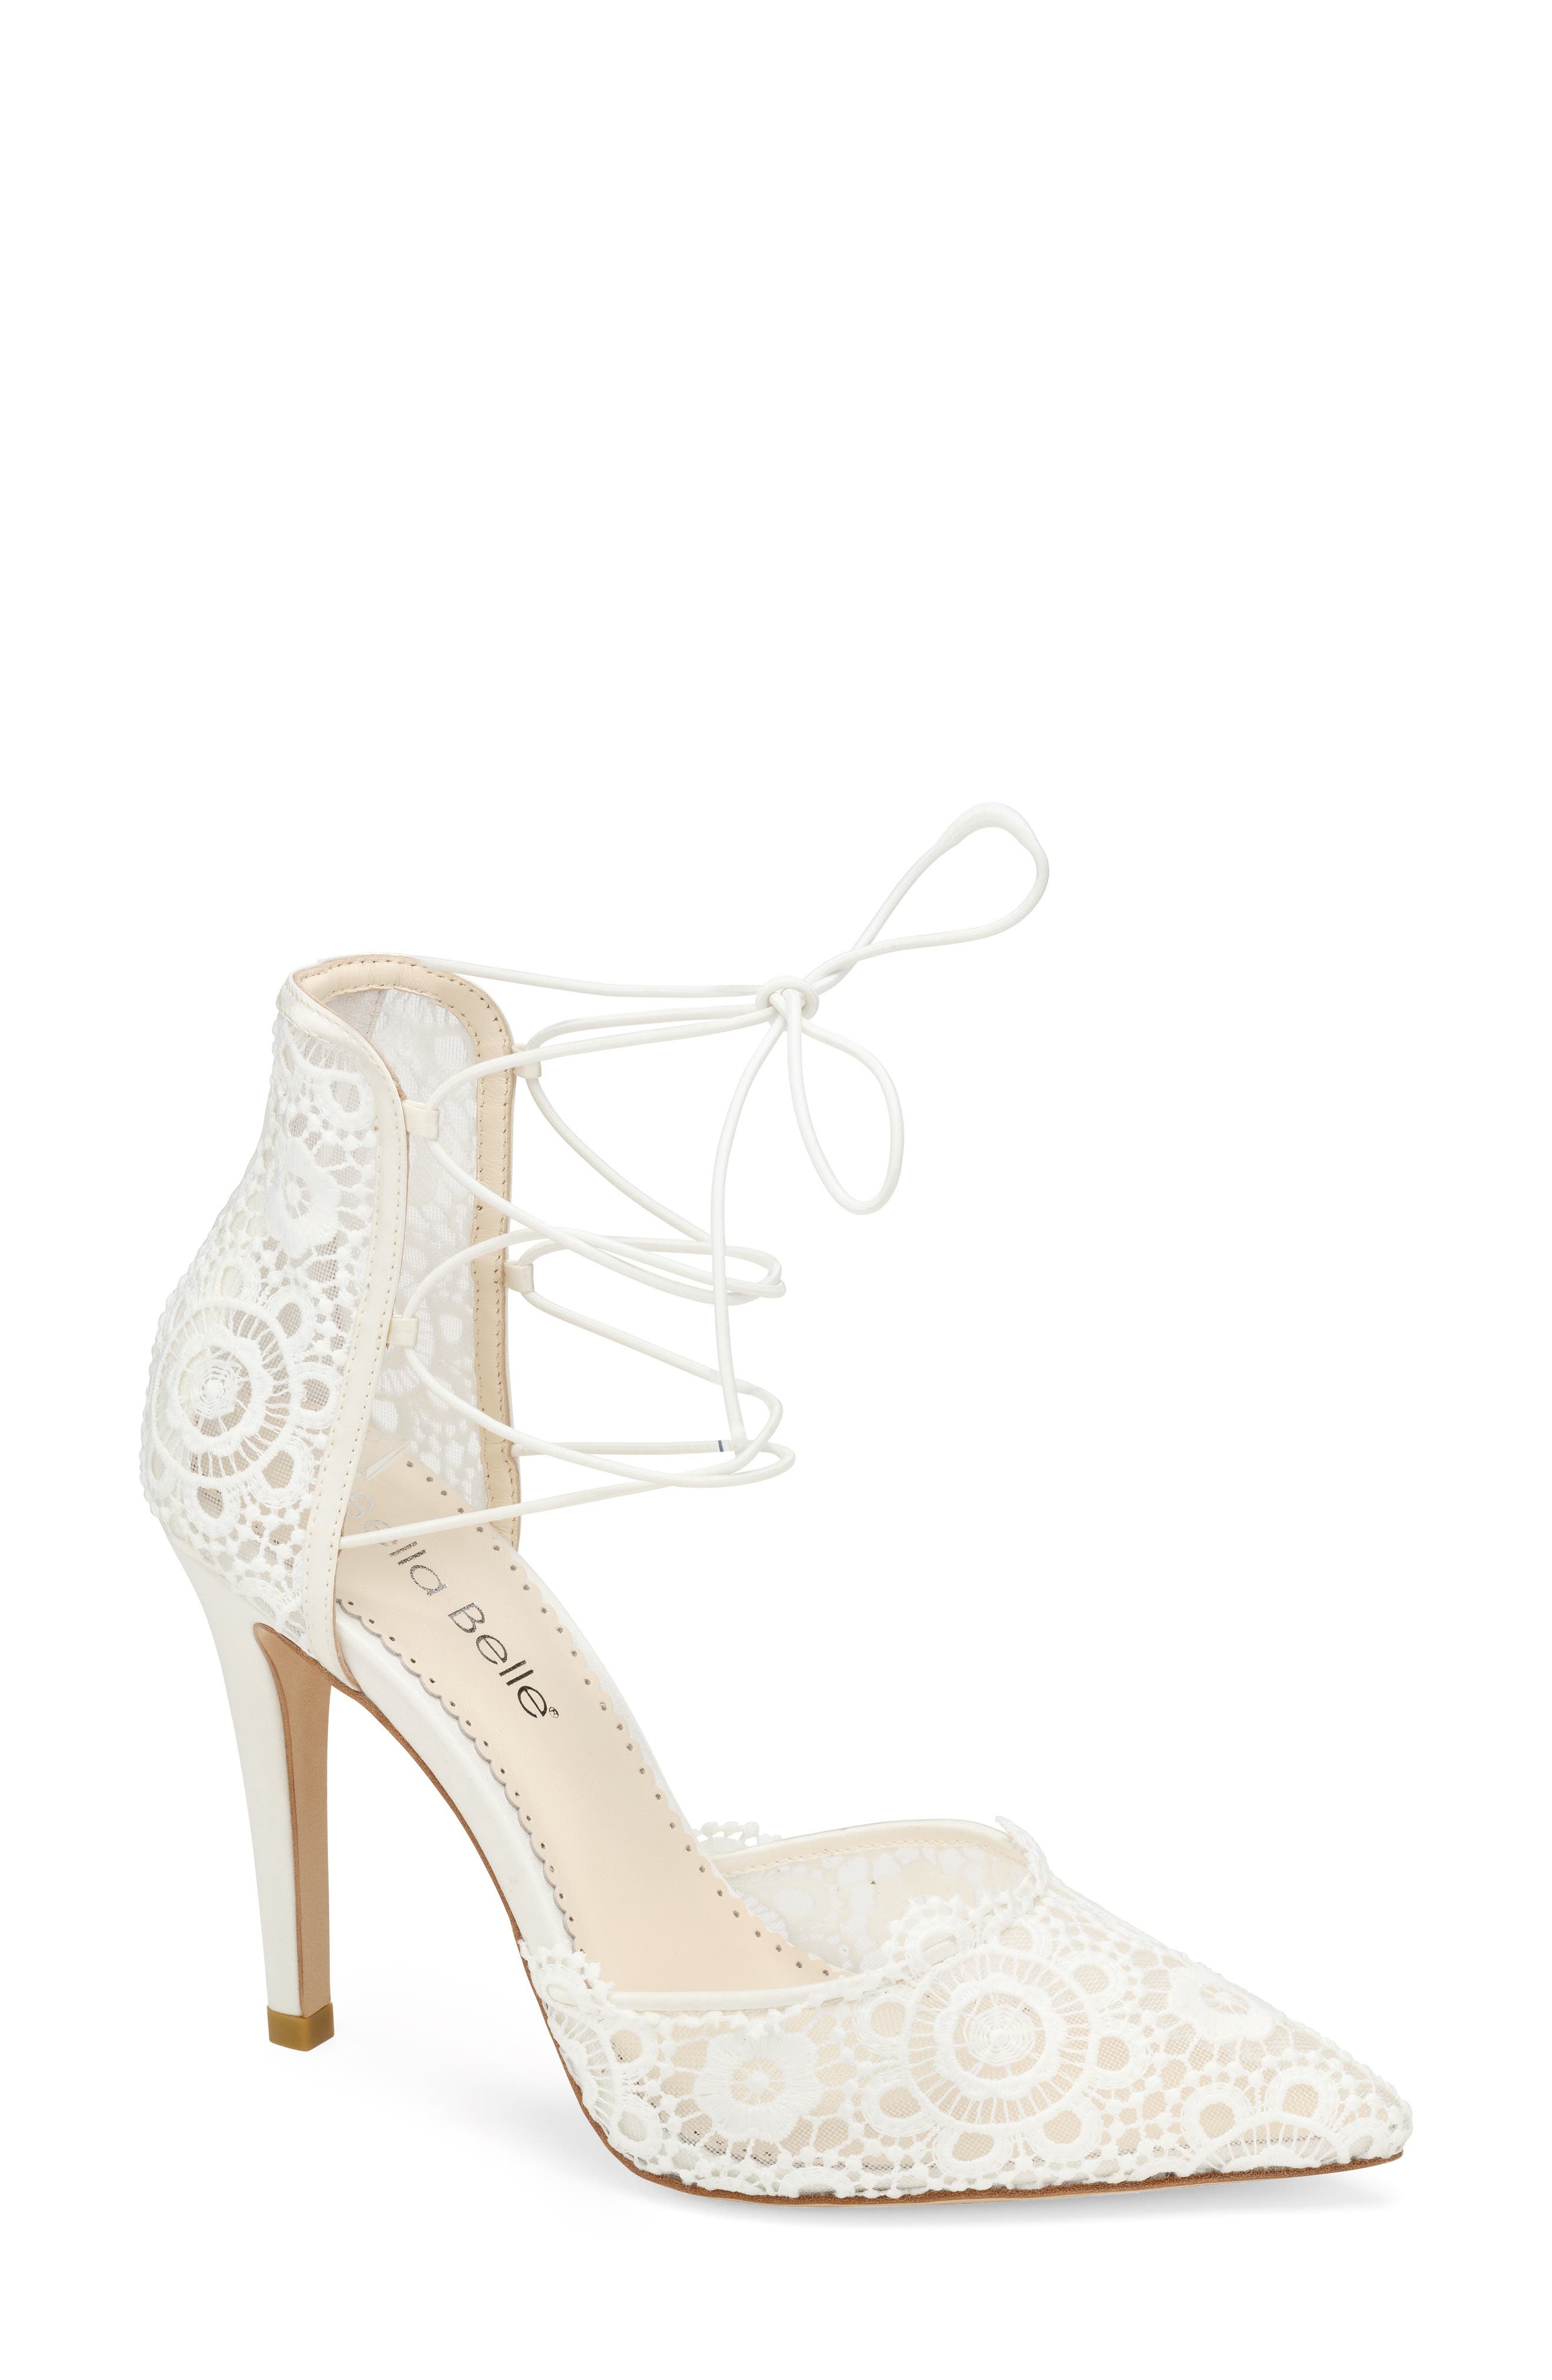 Cameron Pointed Toe Lace Pump